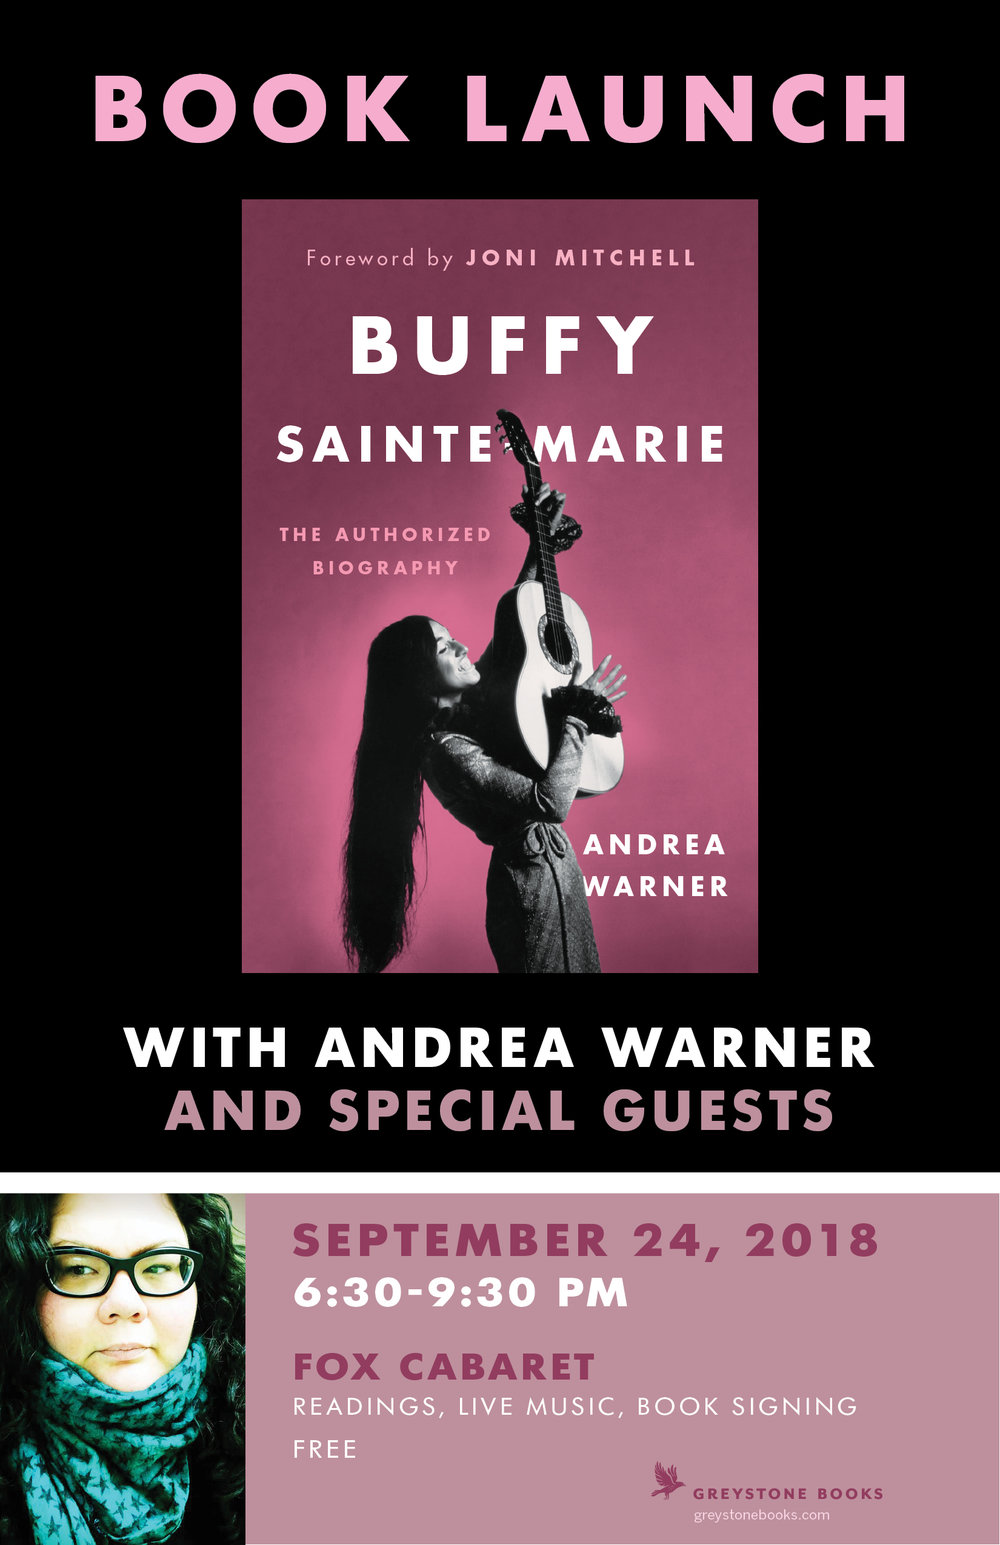 Buffy Poster-Andrea Warner event.jpg